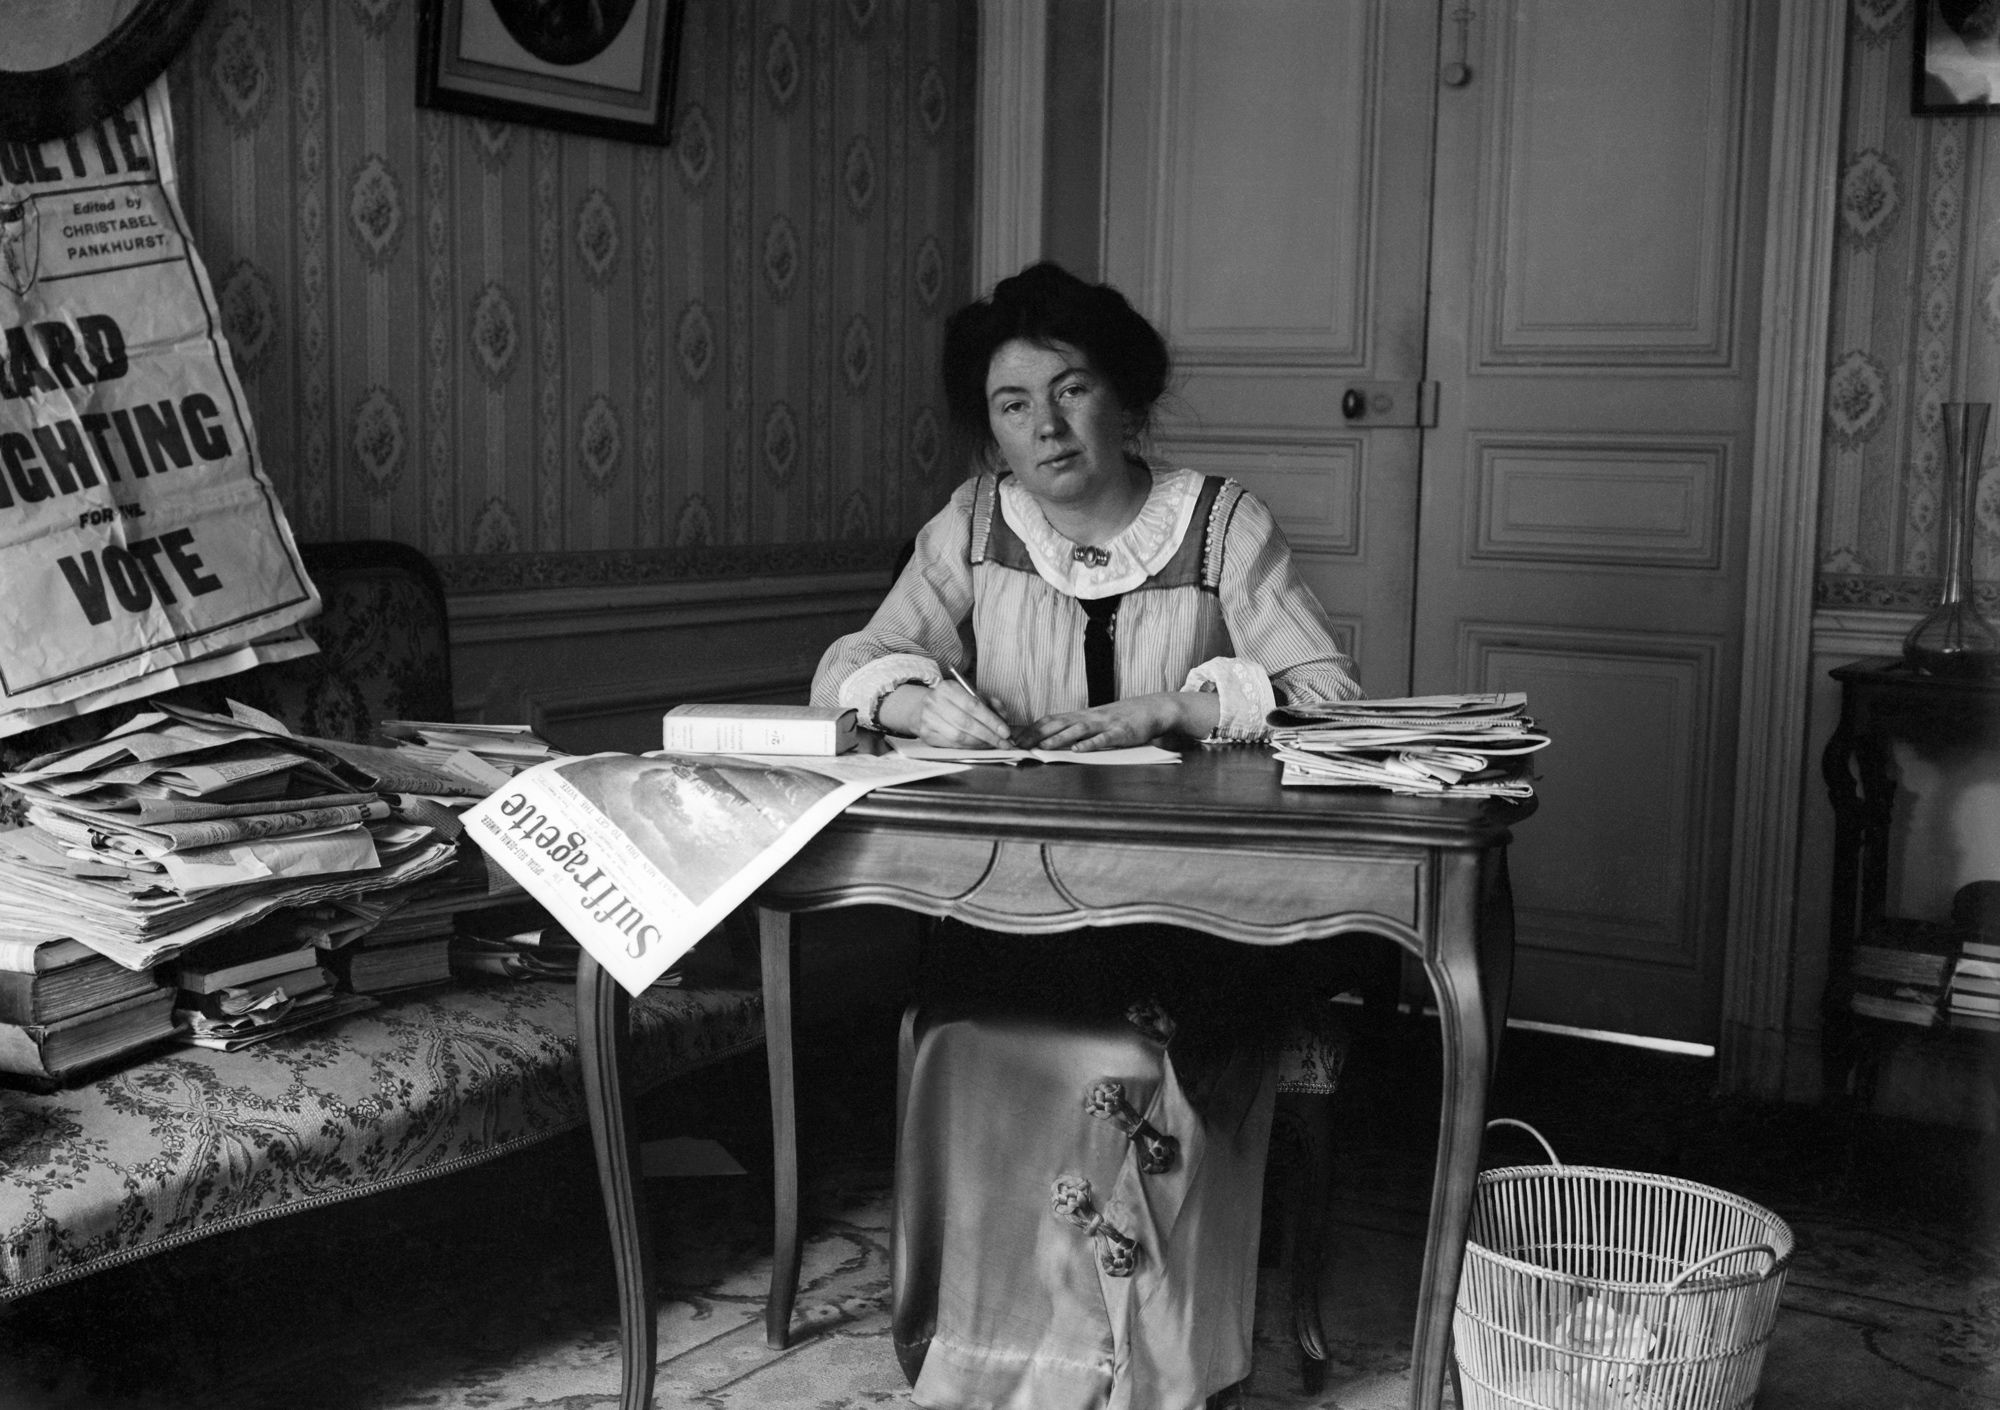 Photo of Christabel Pankhurst sitting at her desk with an isuse of The Suffragette newspaper hanging off the edge. To her left is a sofa with piles of books and demonstration materials